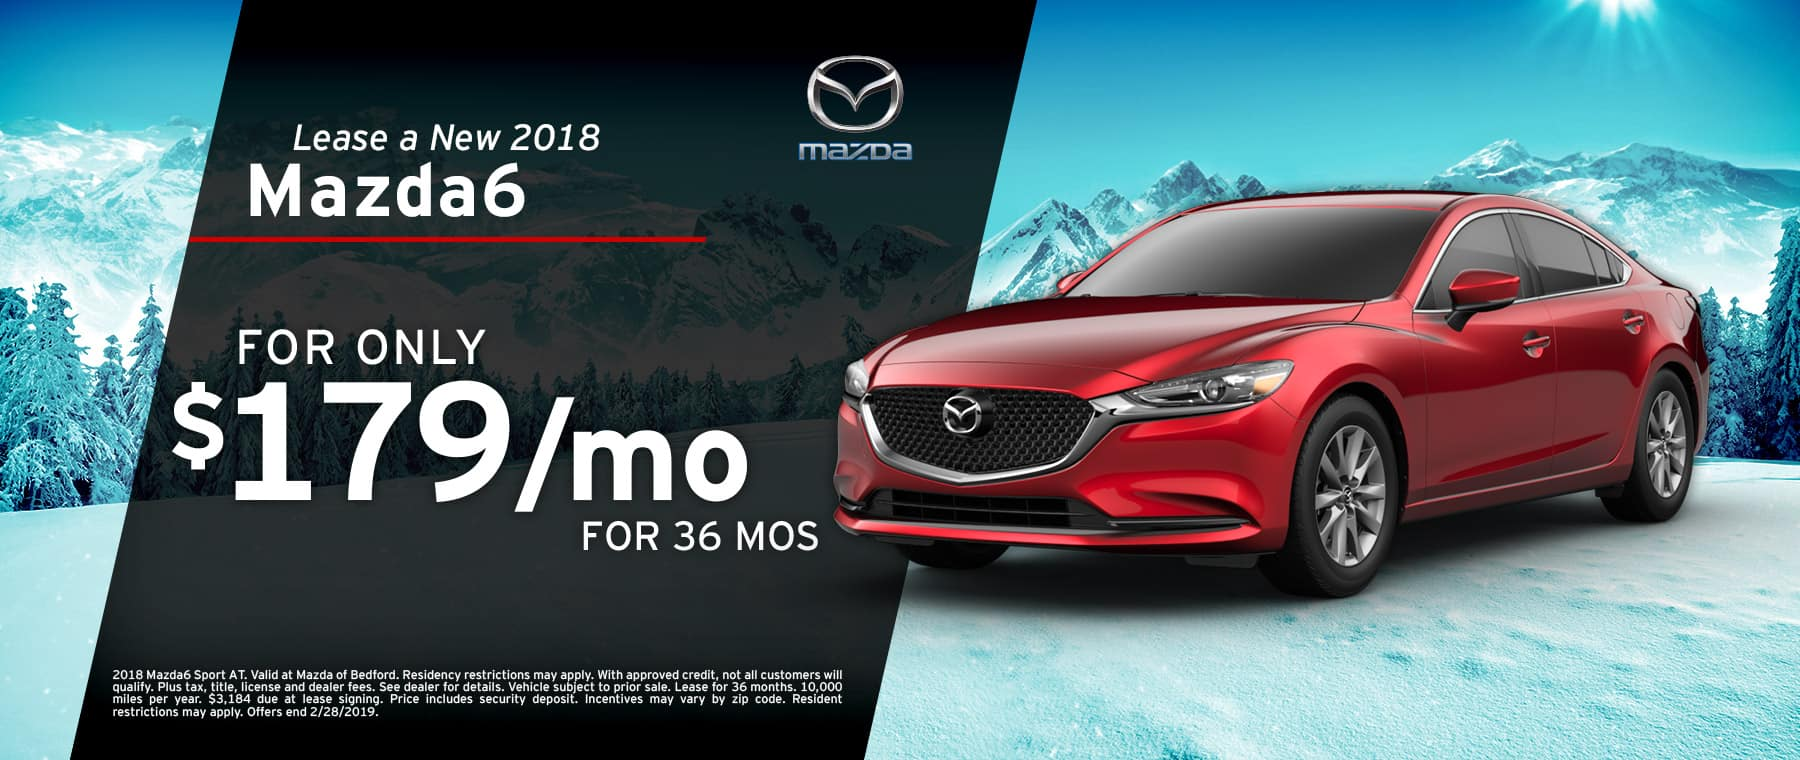 Save when you lease a 2018 Mazda6 at Mazda of Bedford